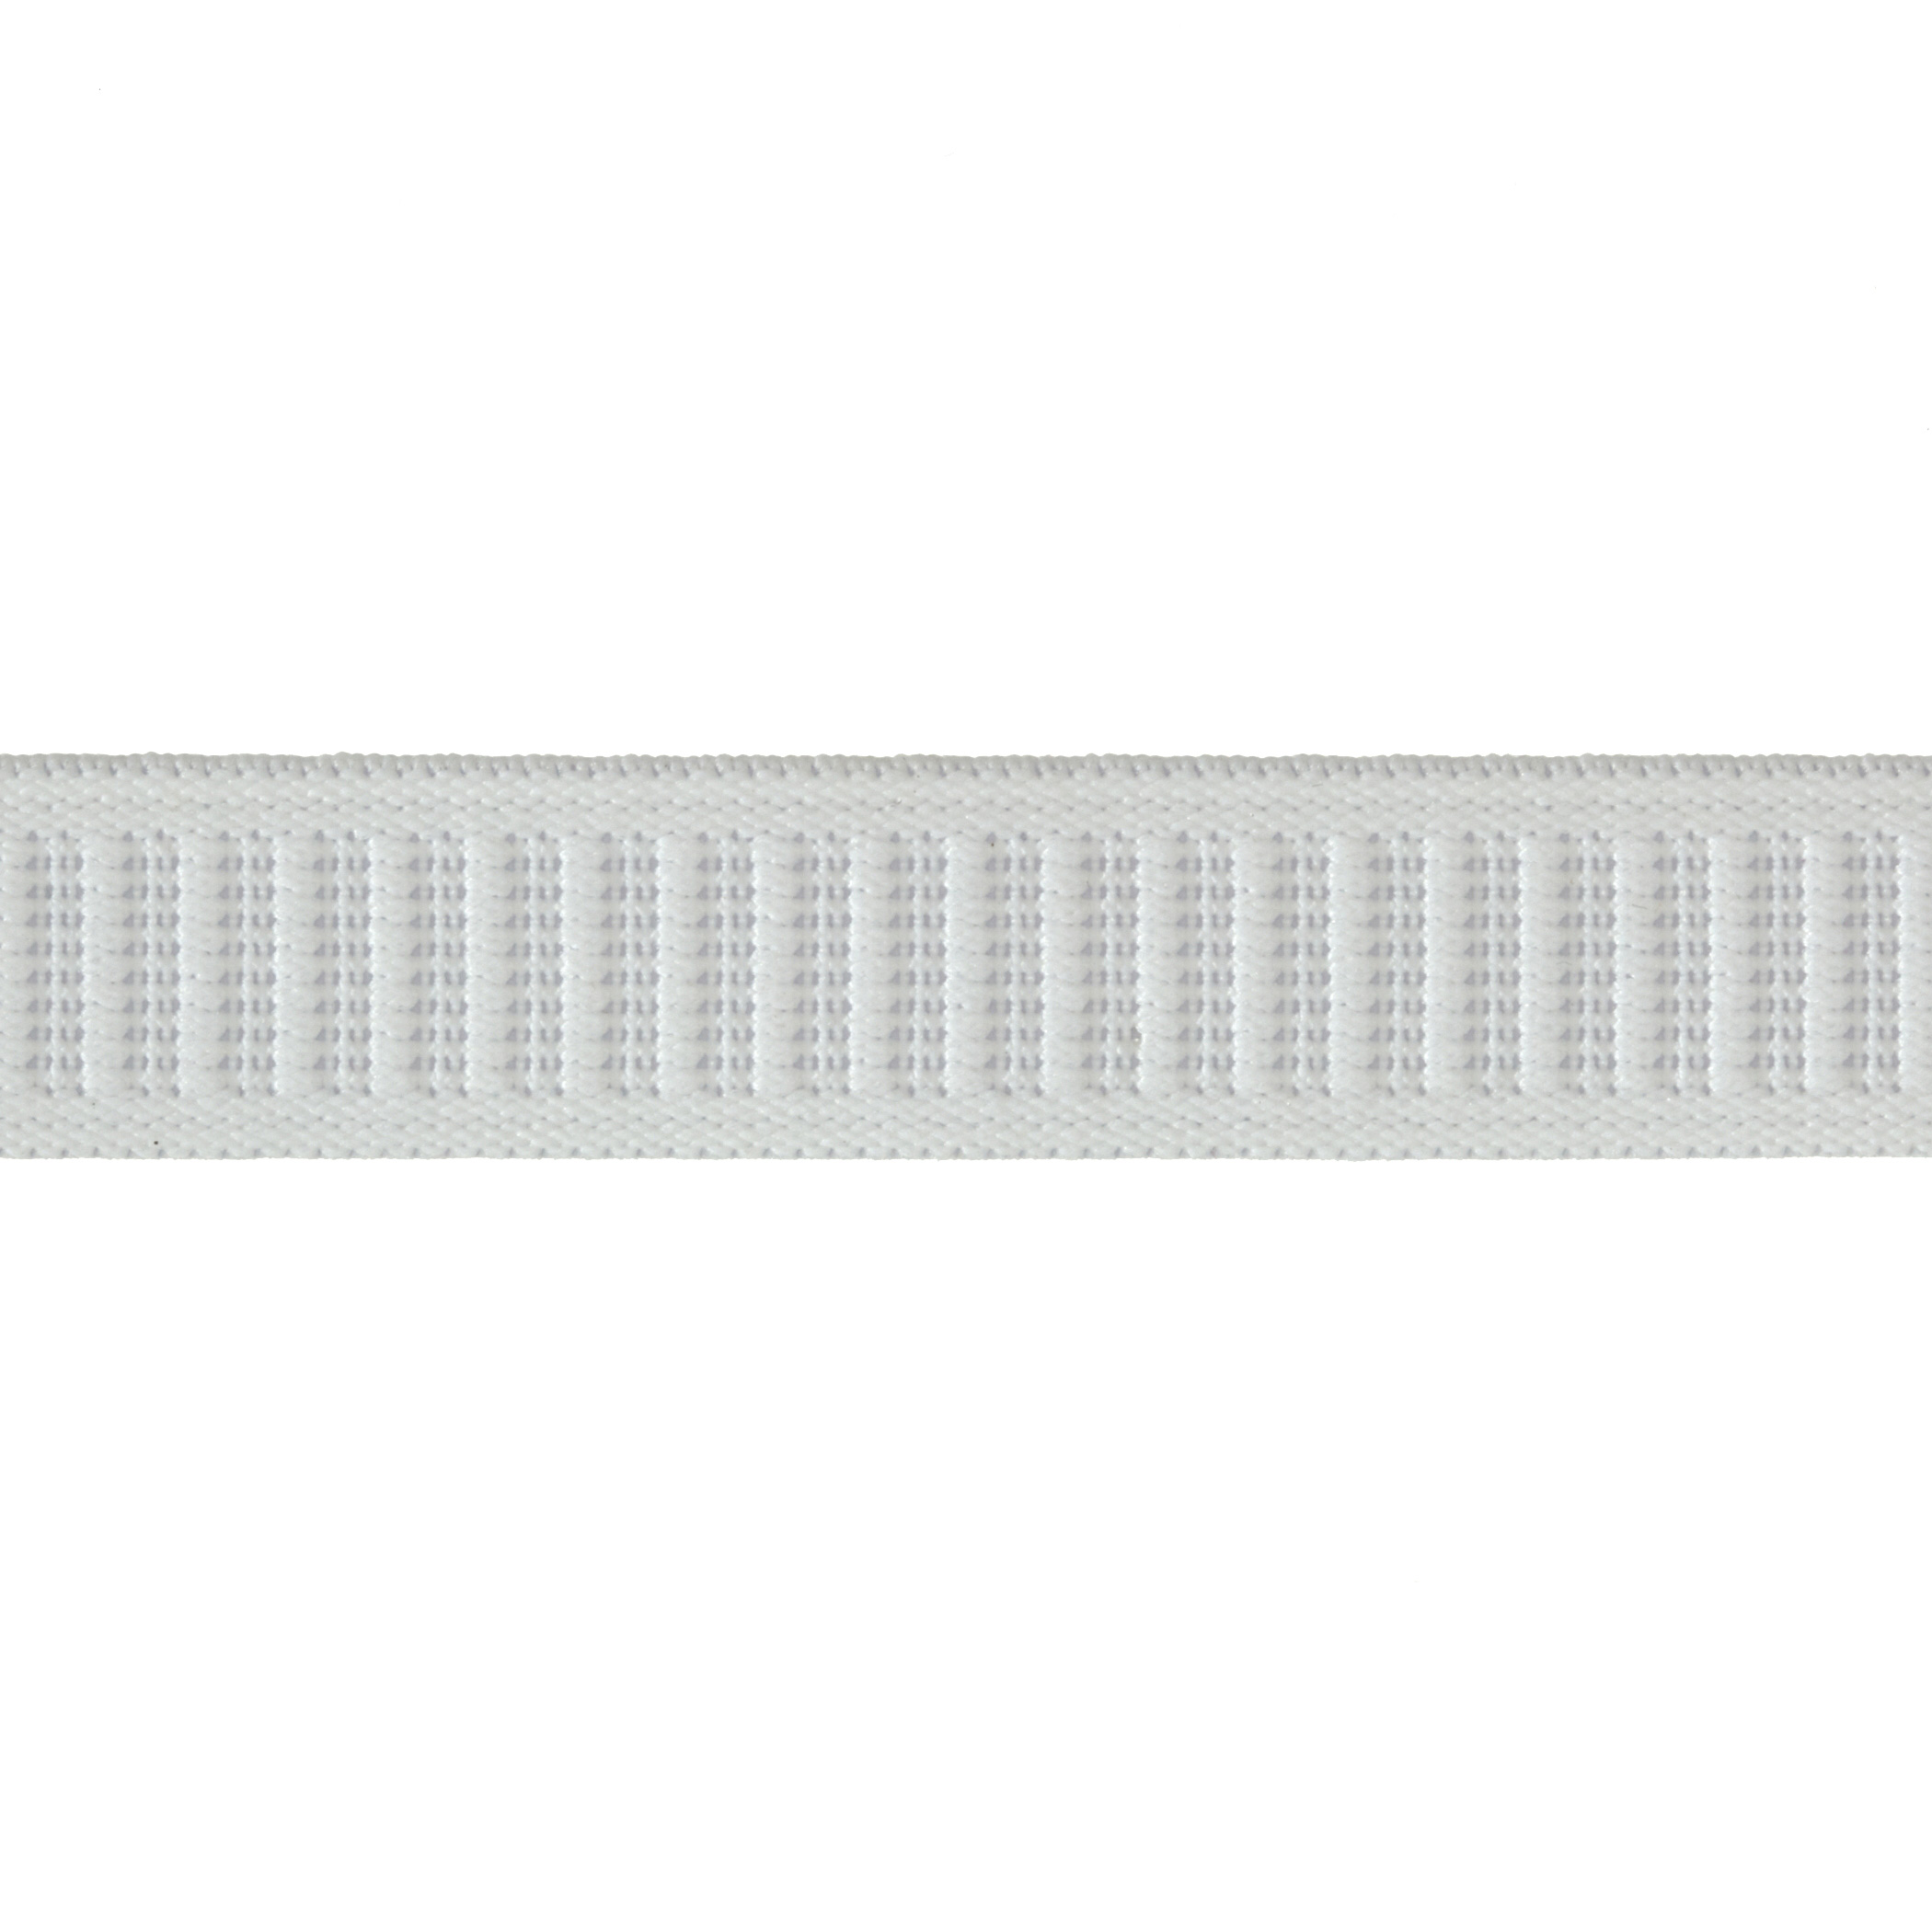 3/4'' Non-Roll Elastic White By the Yard